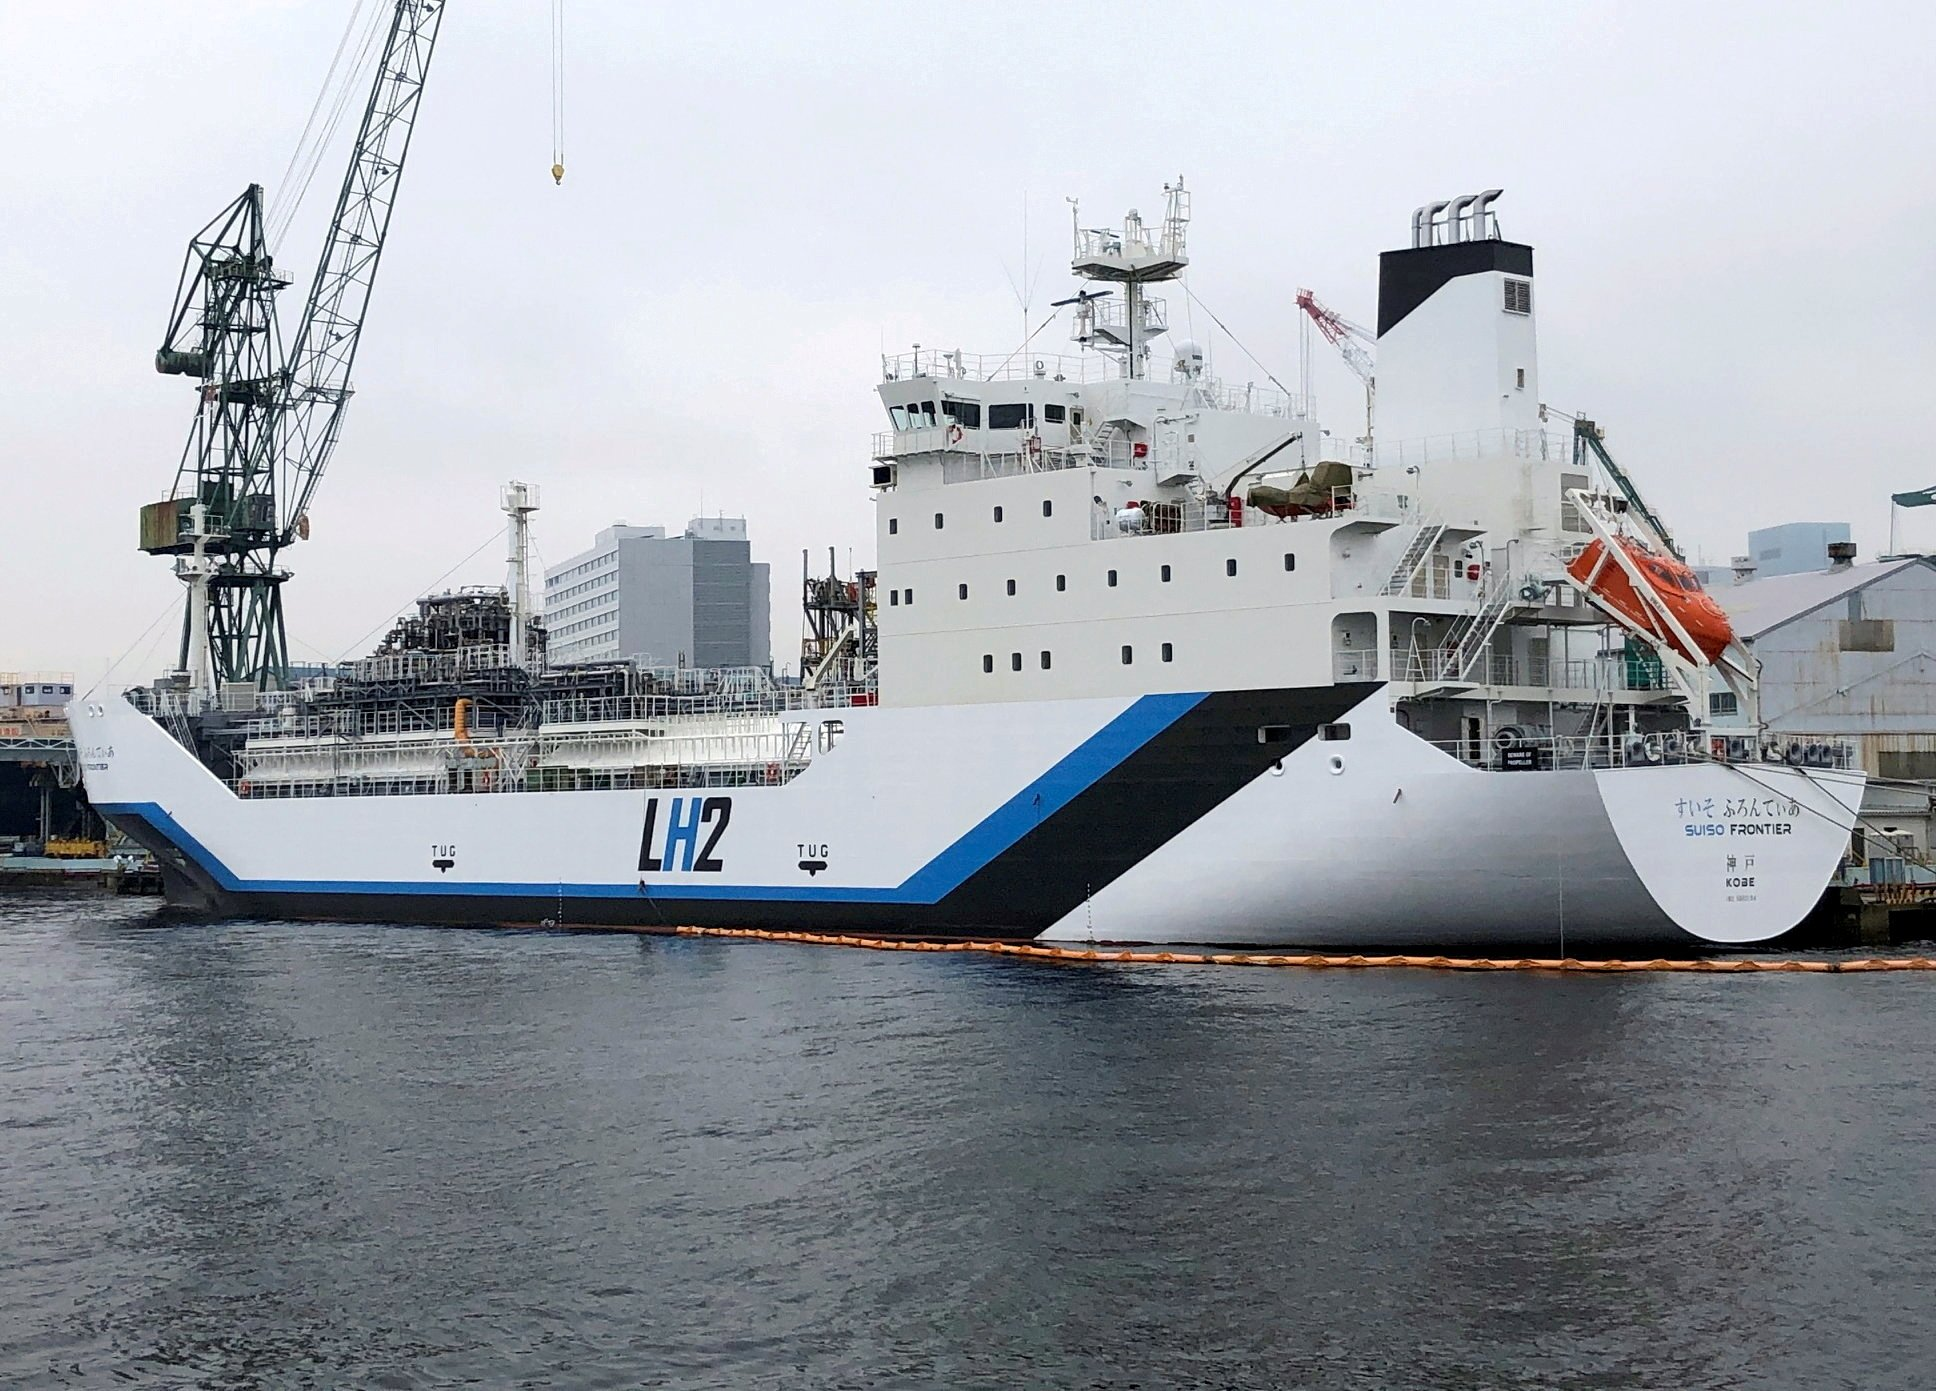 Liquefied hydrogen carrier Suiso Frontier in Japan. PHOTO: GETTY IMAGES